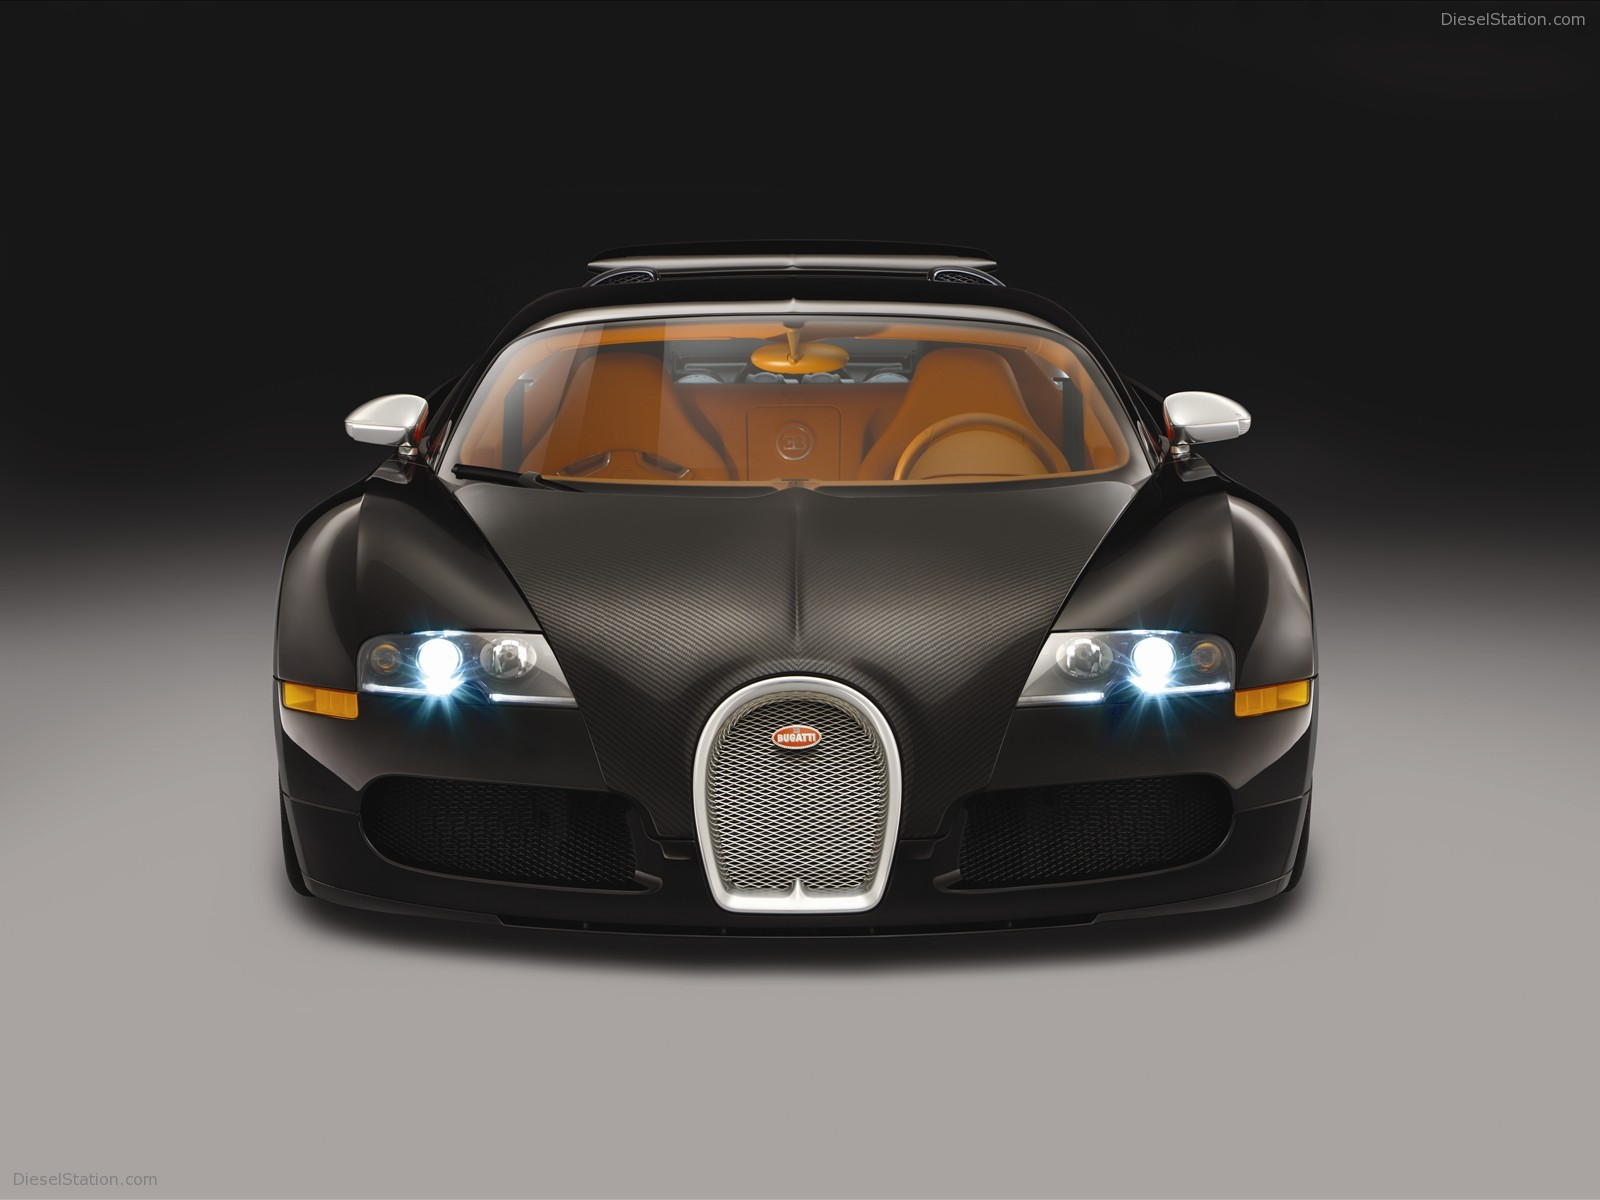 Bugatti EB 164 Veyron Sang Noir Exotic Car Picture 01 of 1600x1200